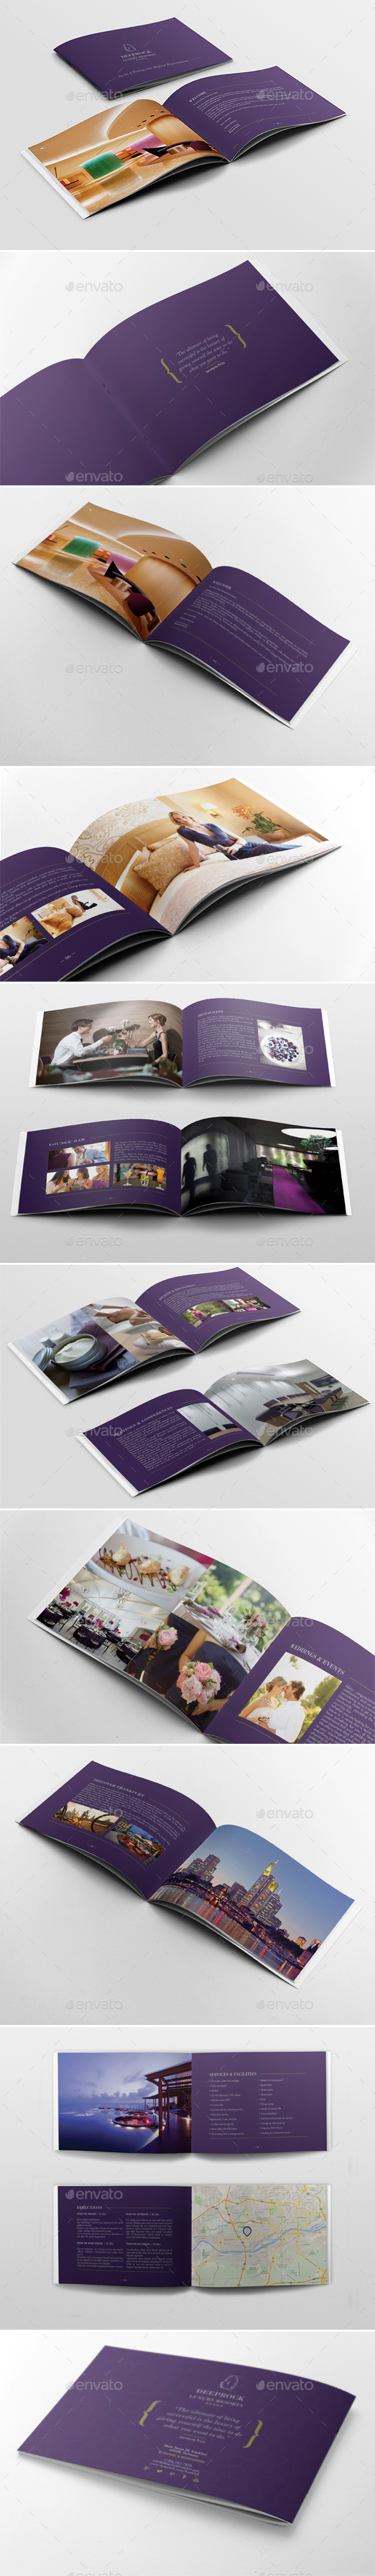 Brochure Booklet Template - Brochures Print Templates